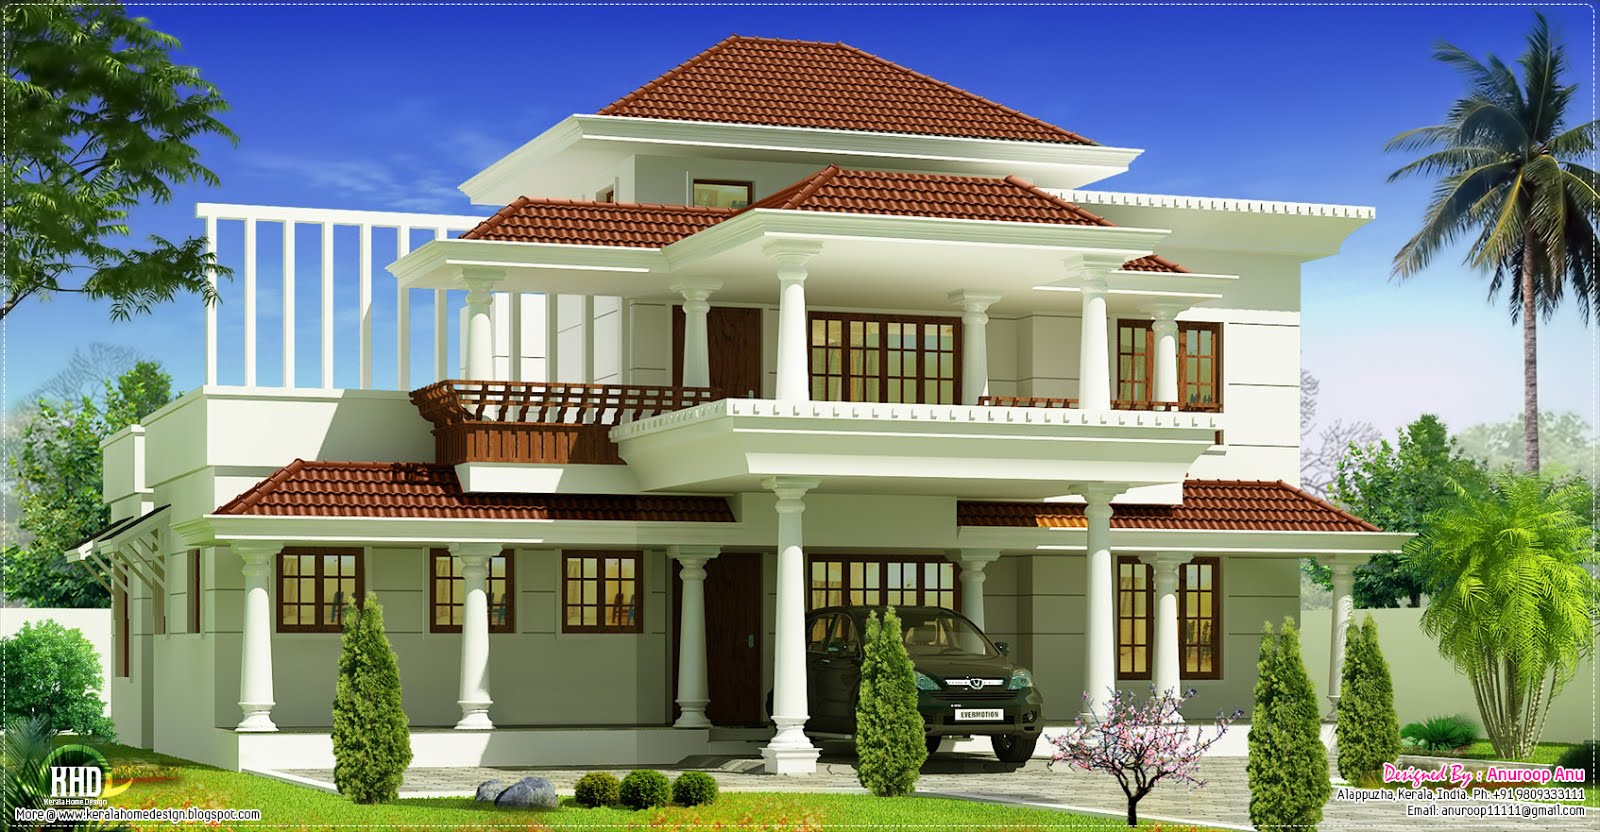 Kerala house models houses plans designs for Best home designs 2015